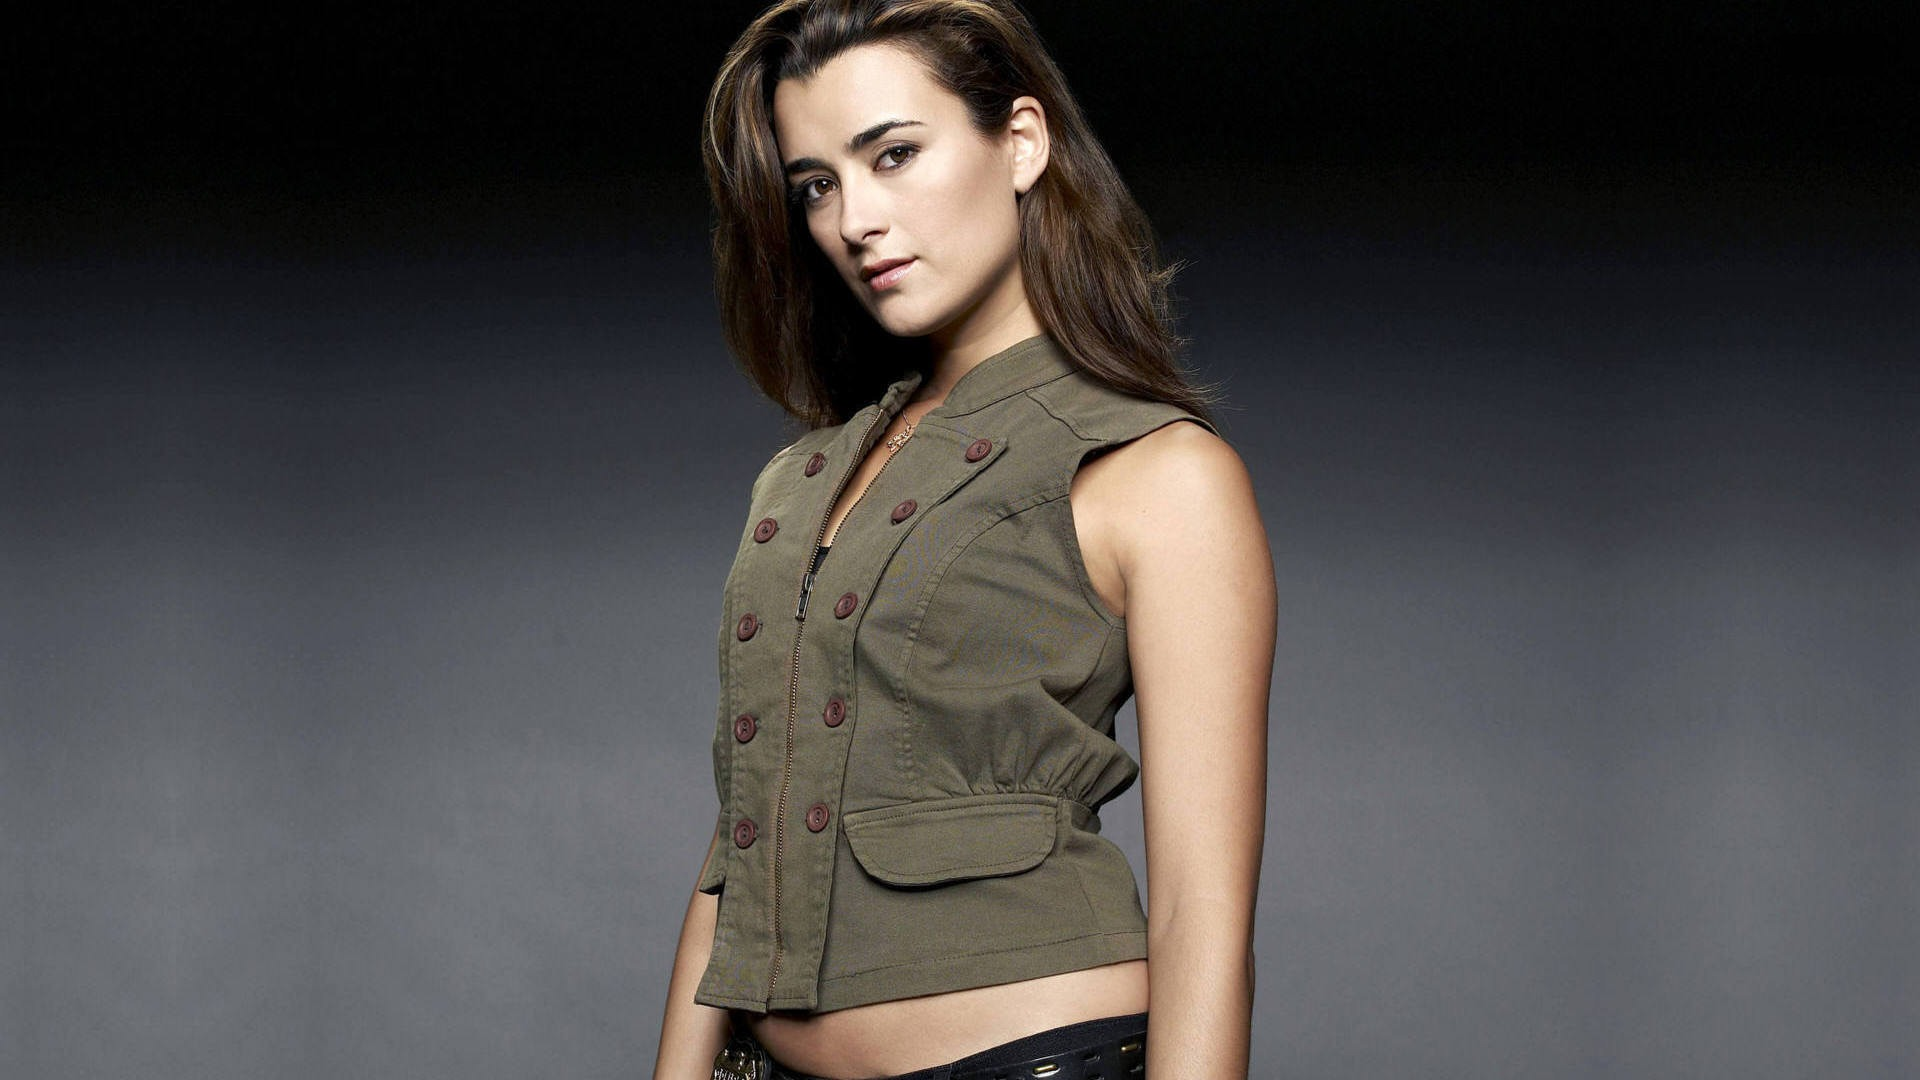 Cote de Pablo #017 - 1920x1080 Wallpapers Pictures Photos Images